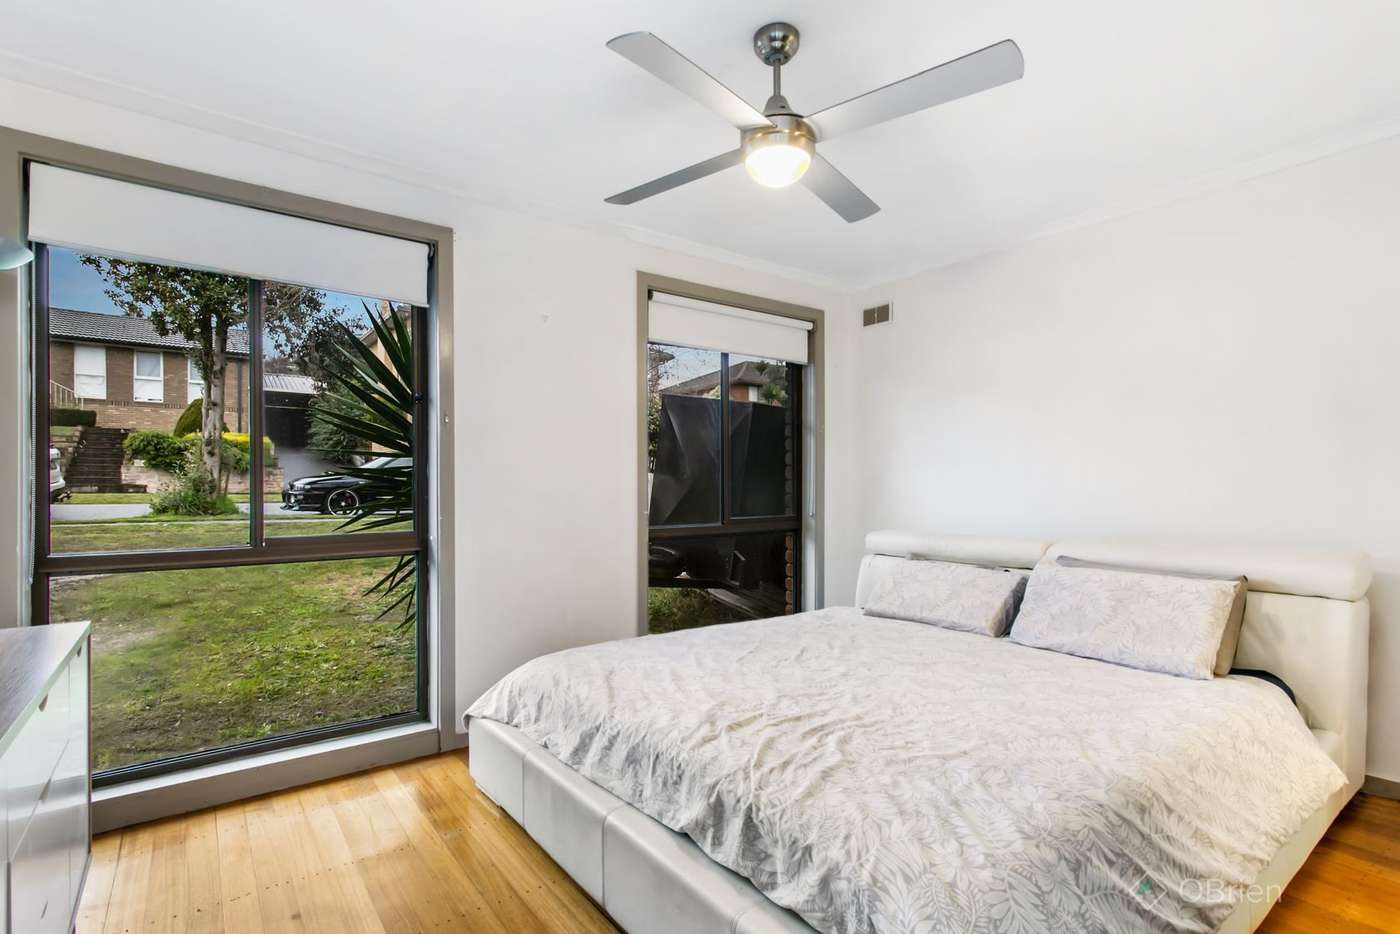 Sixth view of Homely house listing, 4 Simmonds Place, Endeavour Hills VIC 3802